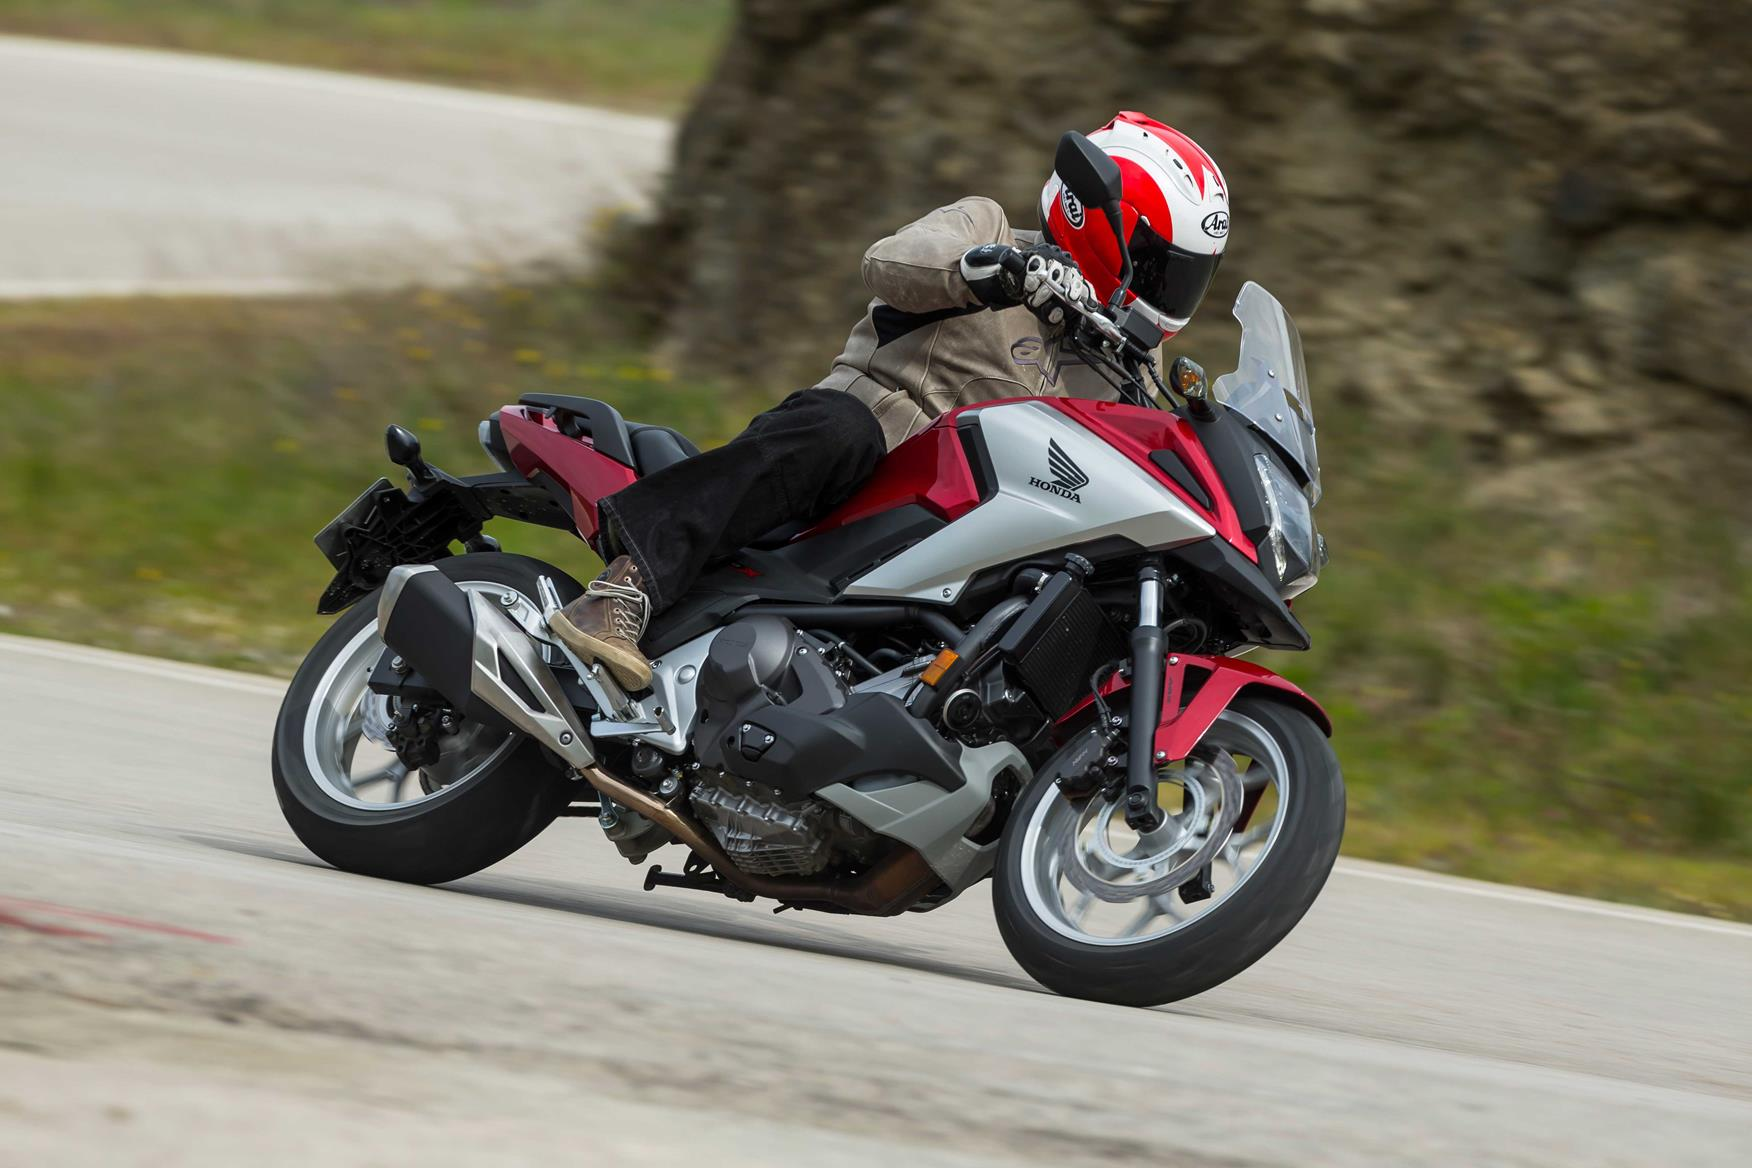 Honda BC750X DCT may appear dull but it's an utterly brilliant all-rounder